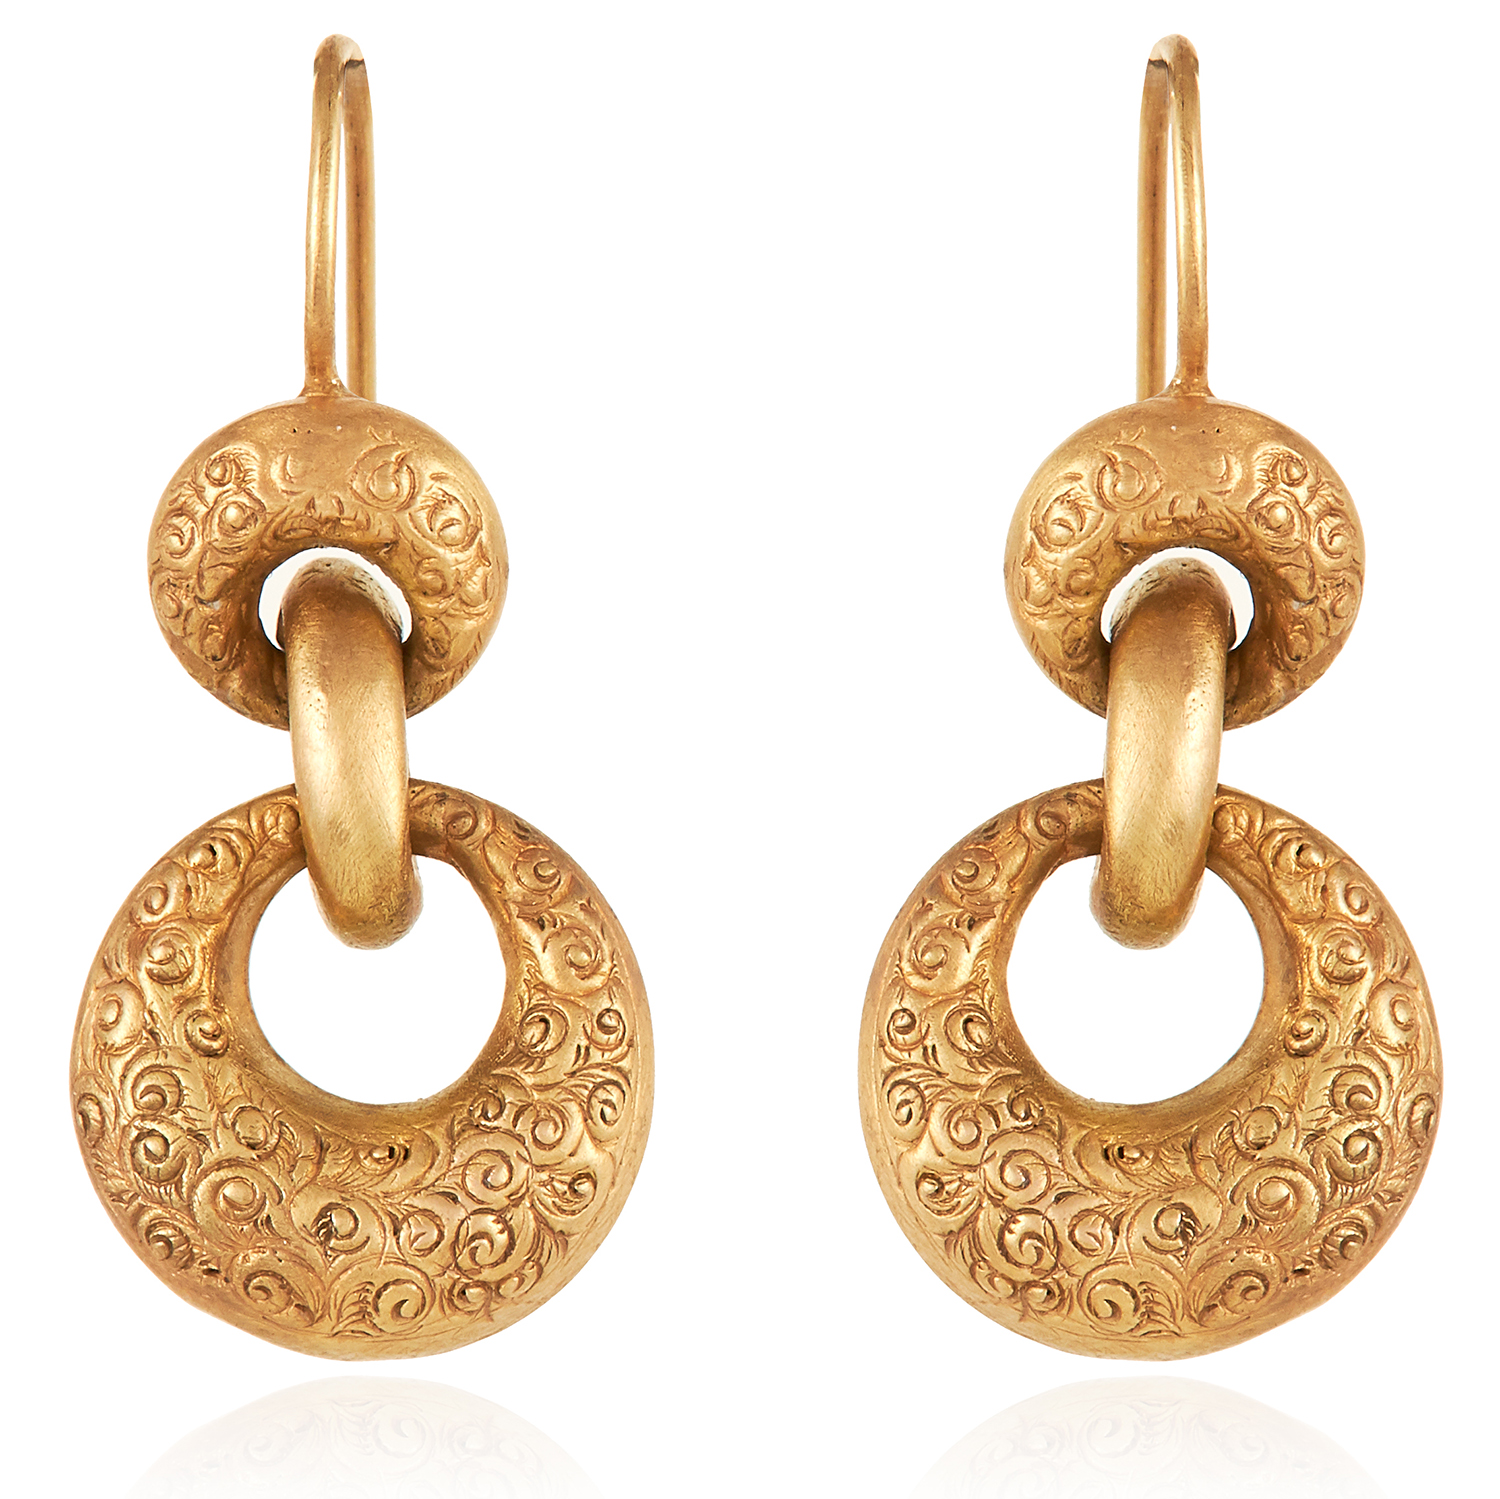 Los 54 - A PAIR OF ANTIQUE ARTICULATED DROP EARRINGS, 19TH CENTURY in high carat yellow gold, designed as a